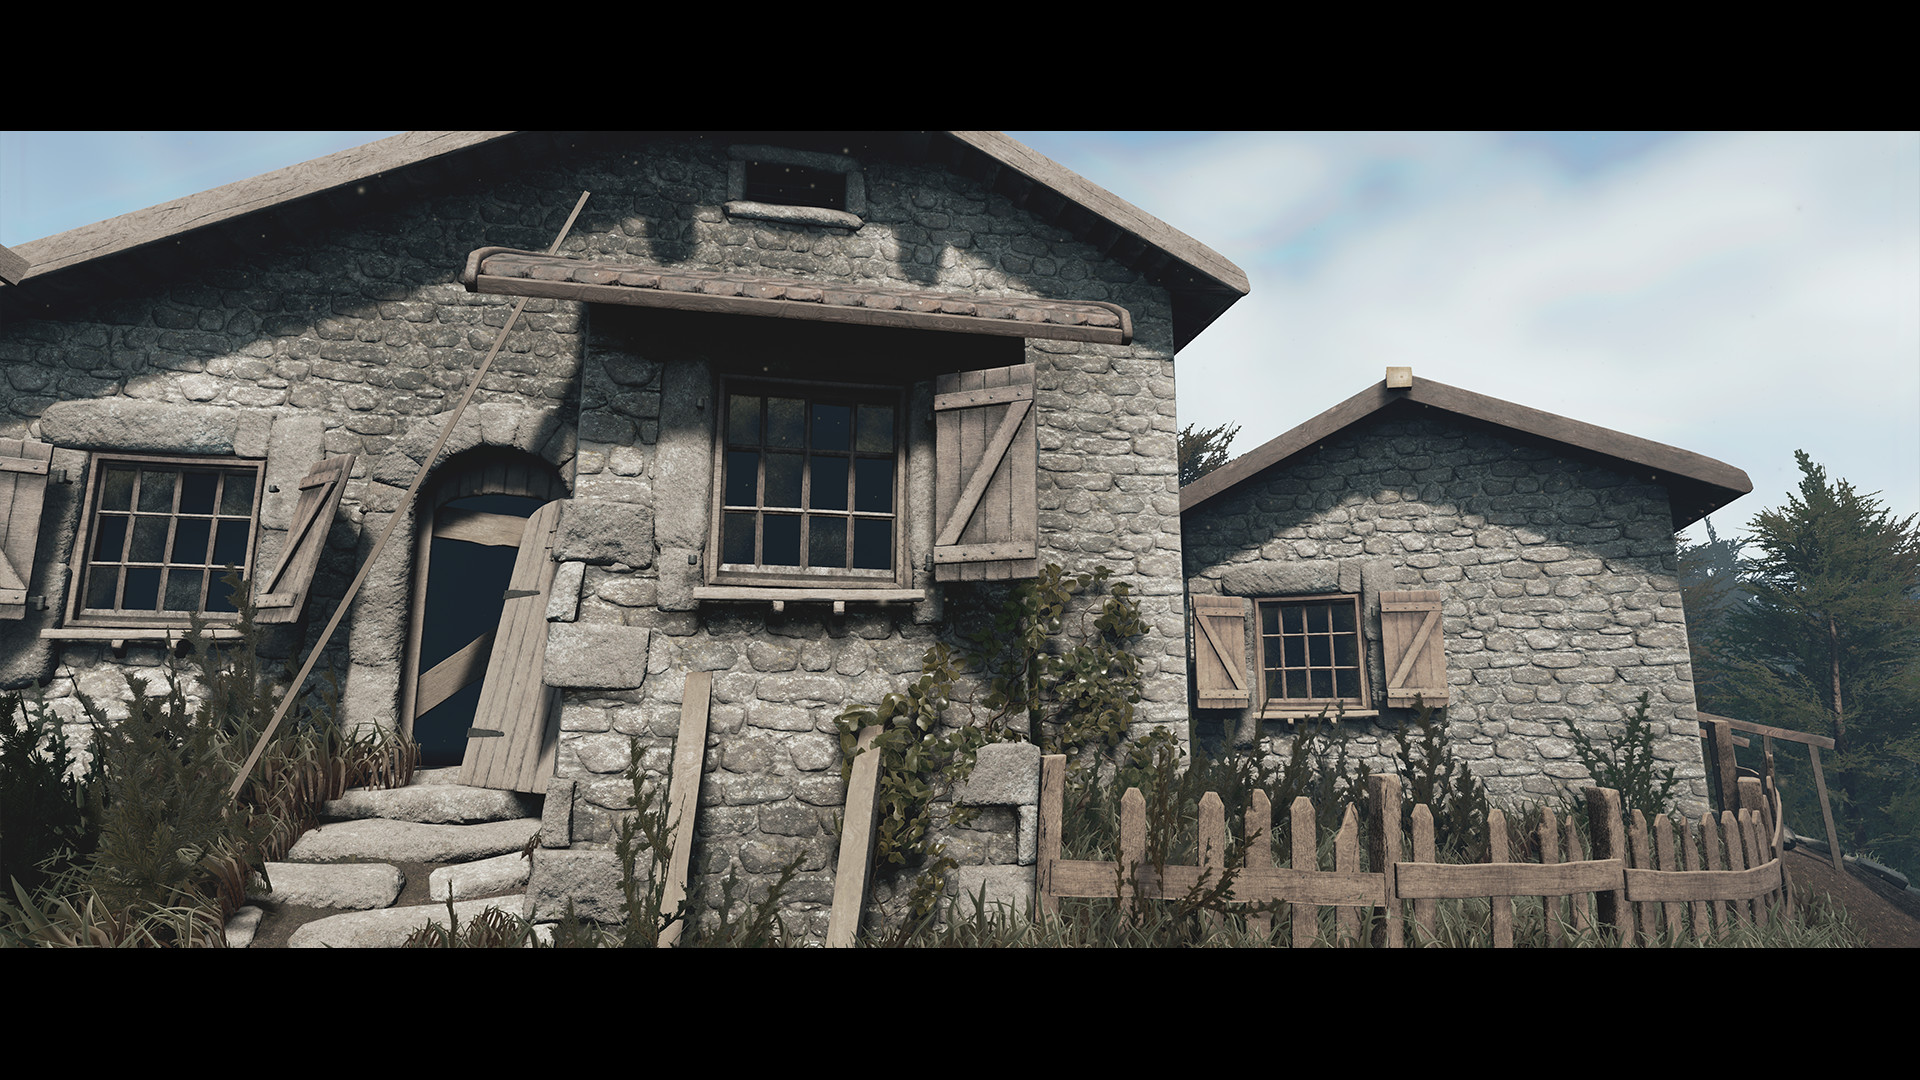 Marco maria rossi store oldvillage screenshot 3